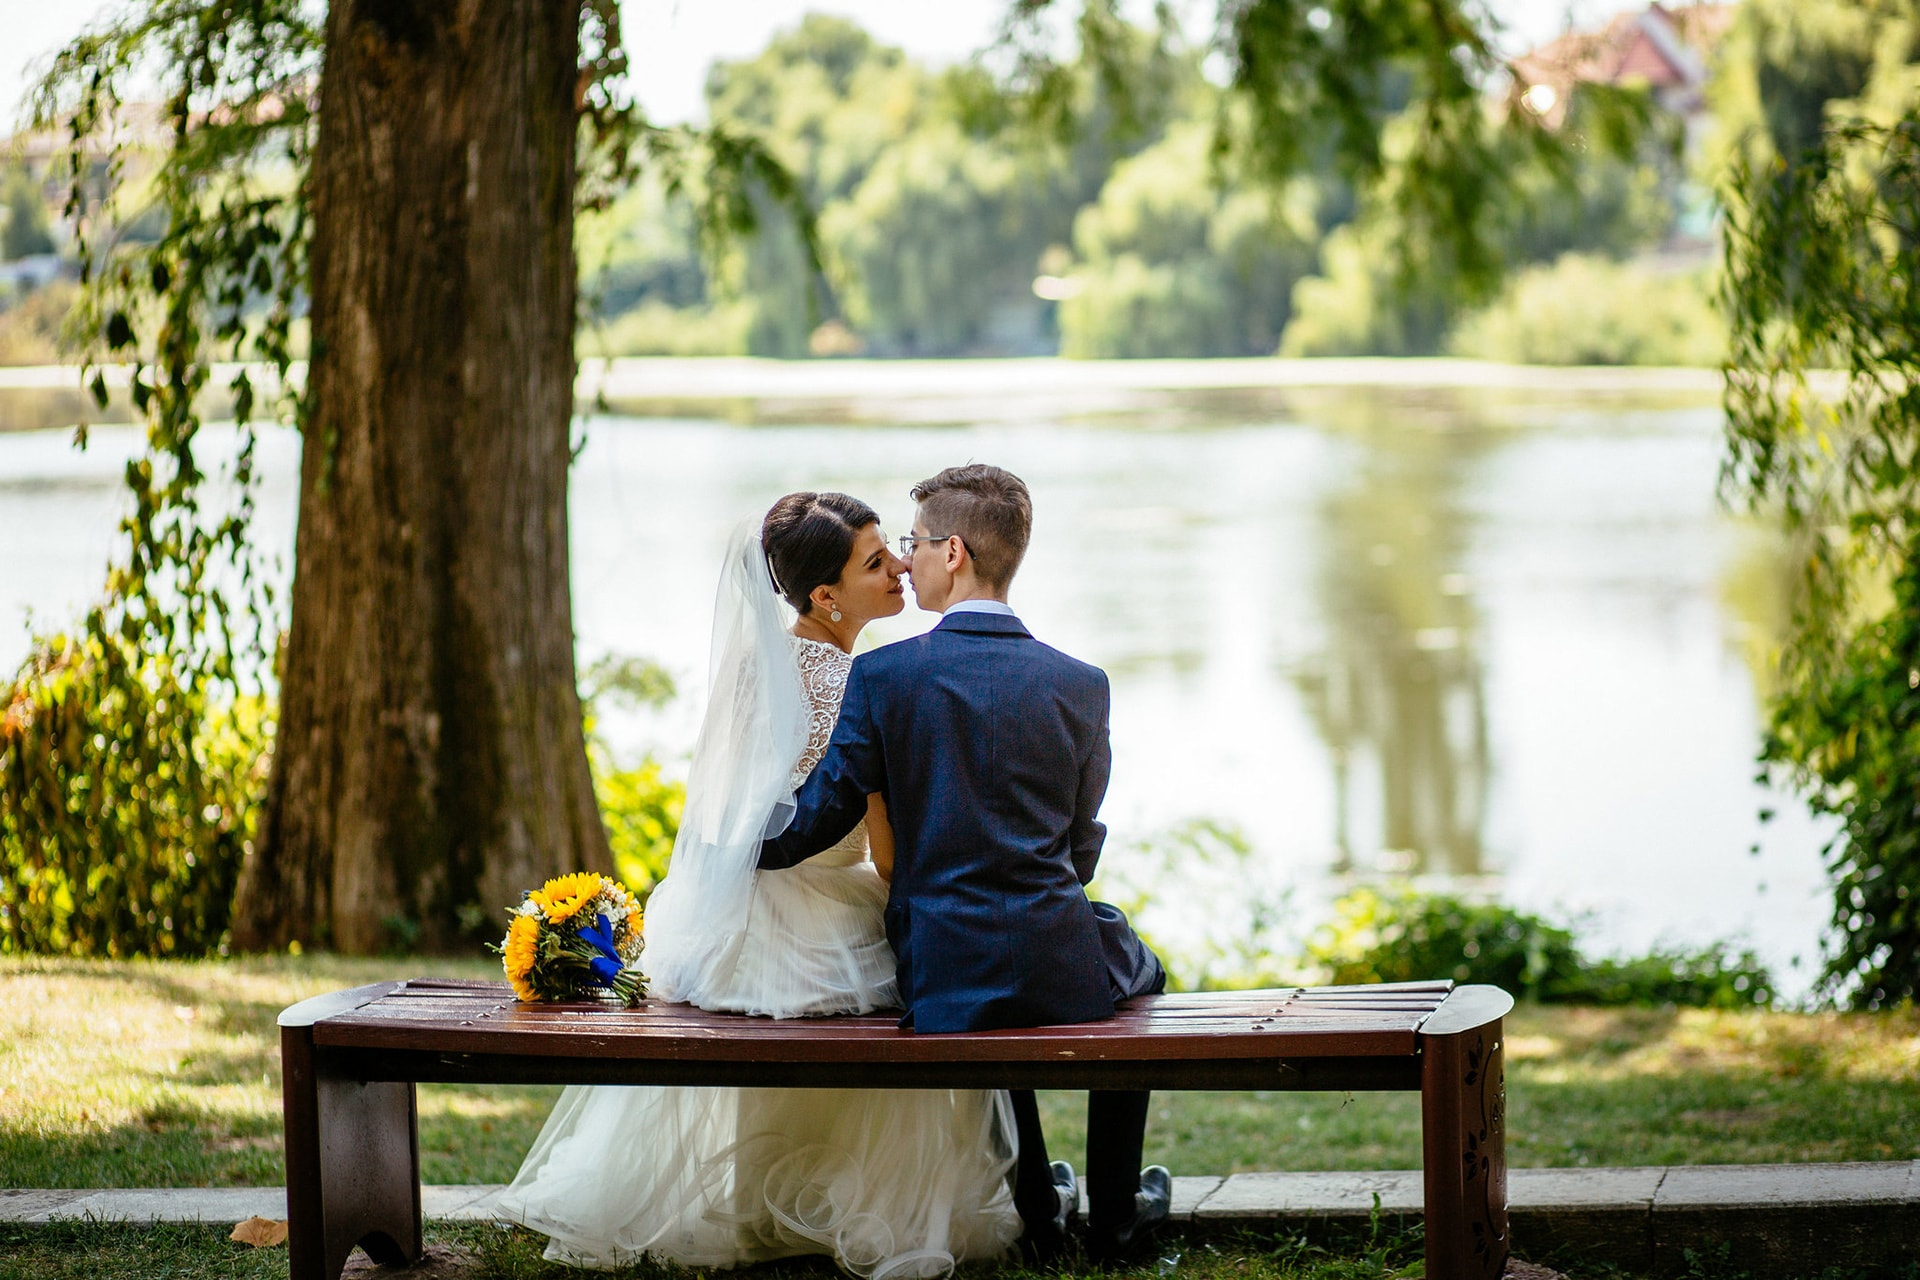 Mitică Stînga – Wedding Films